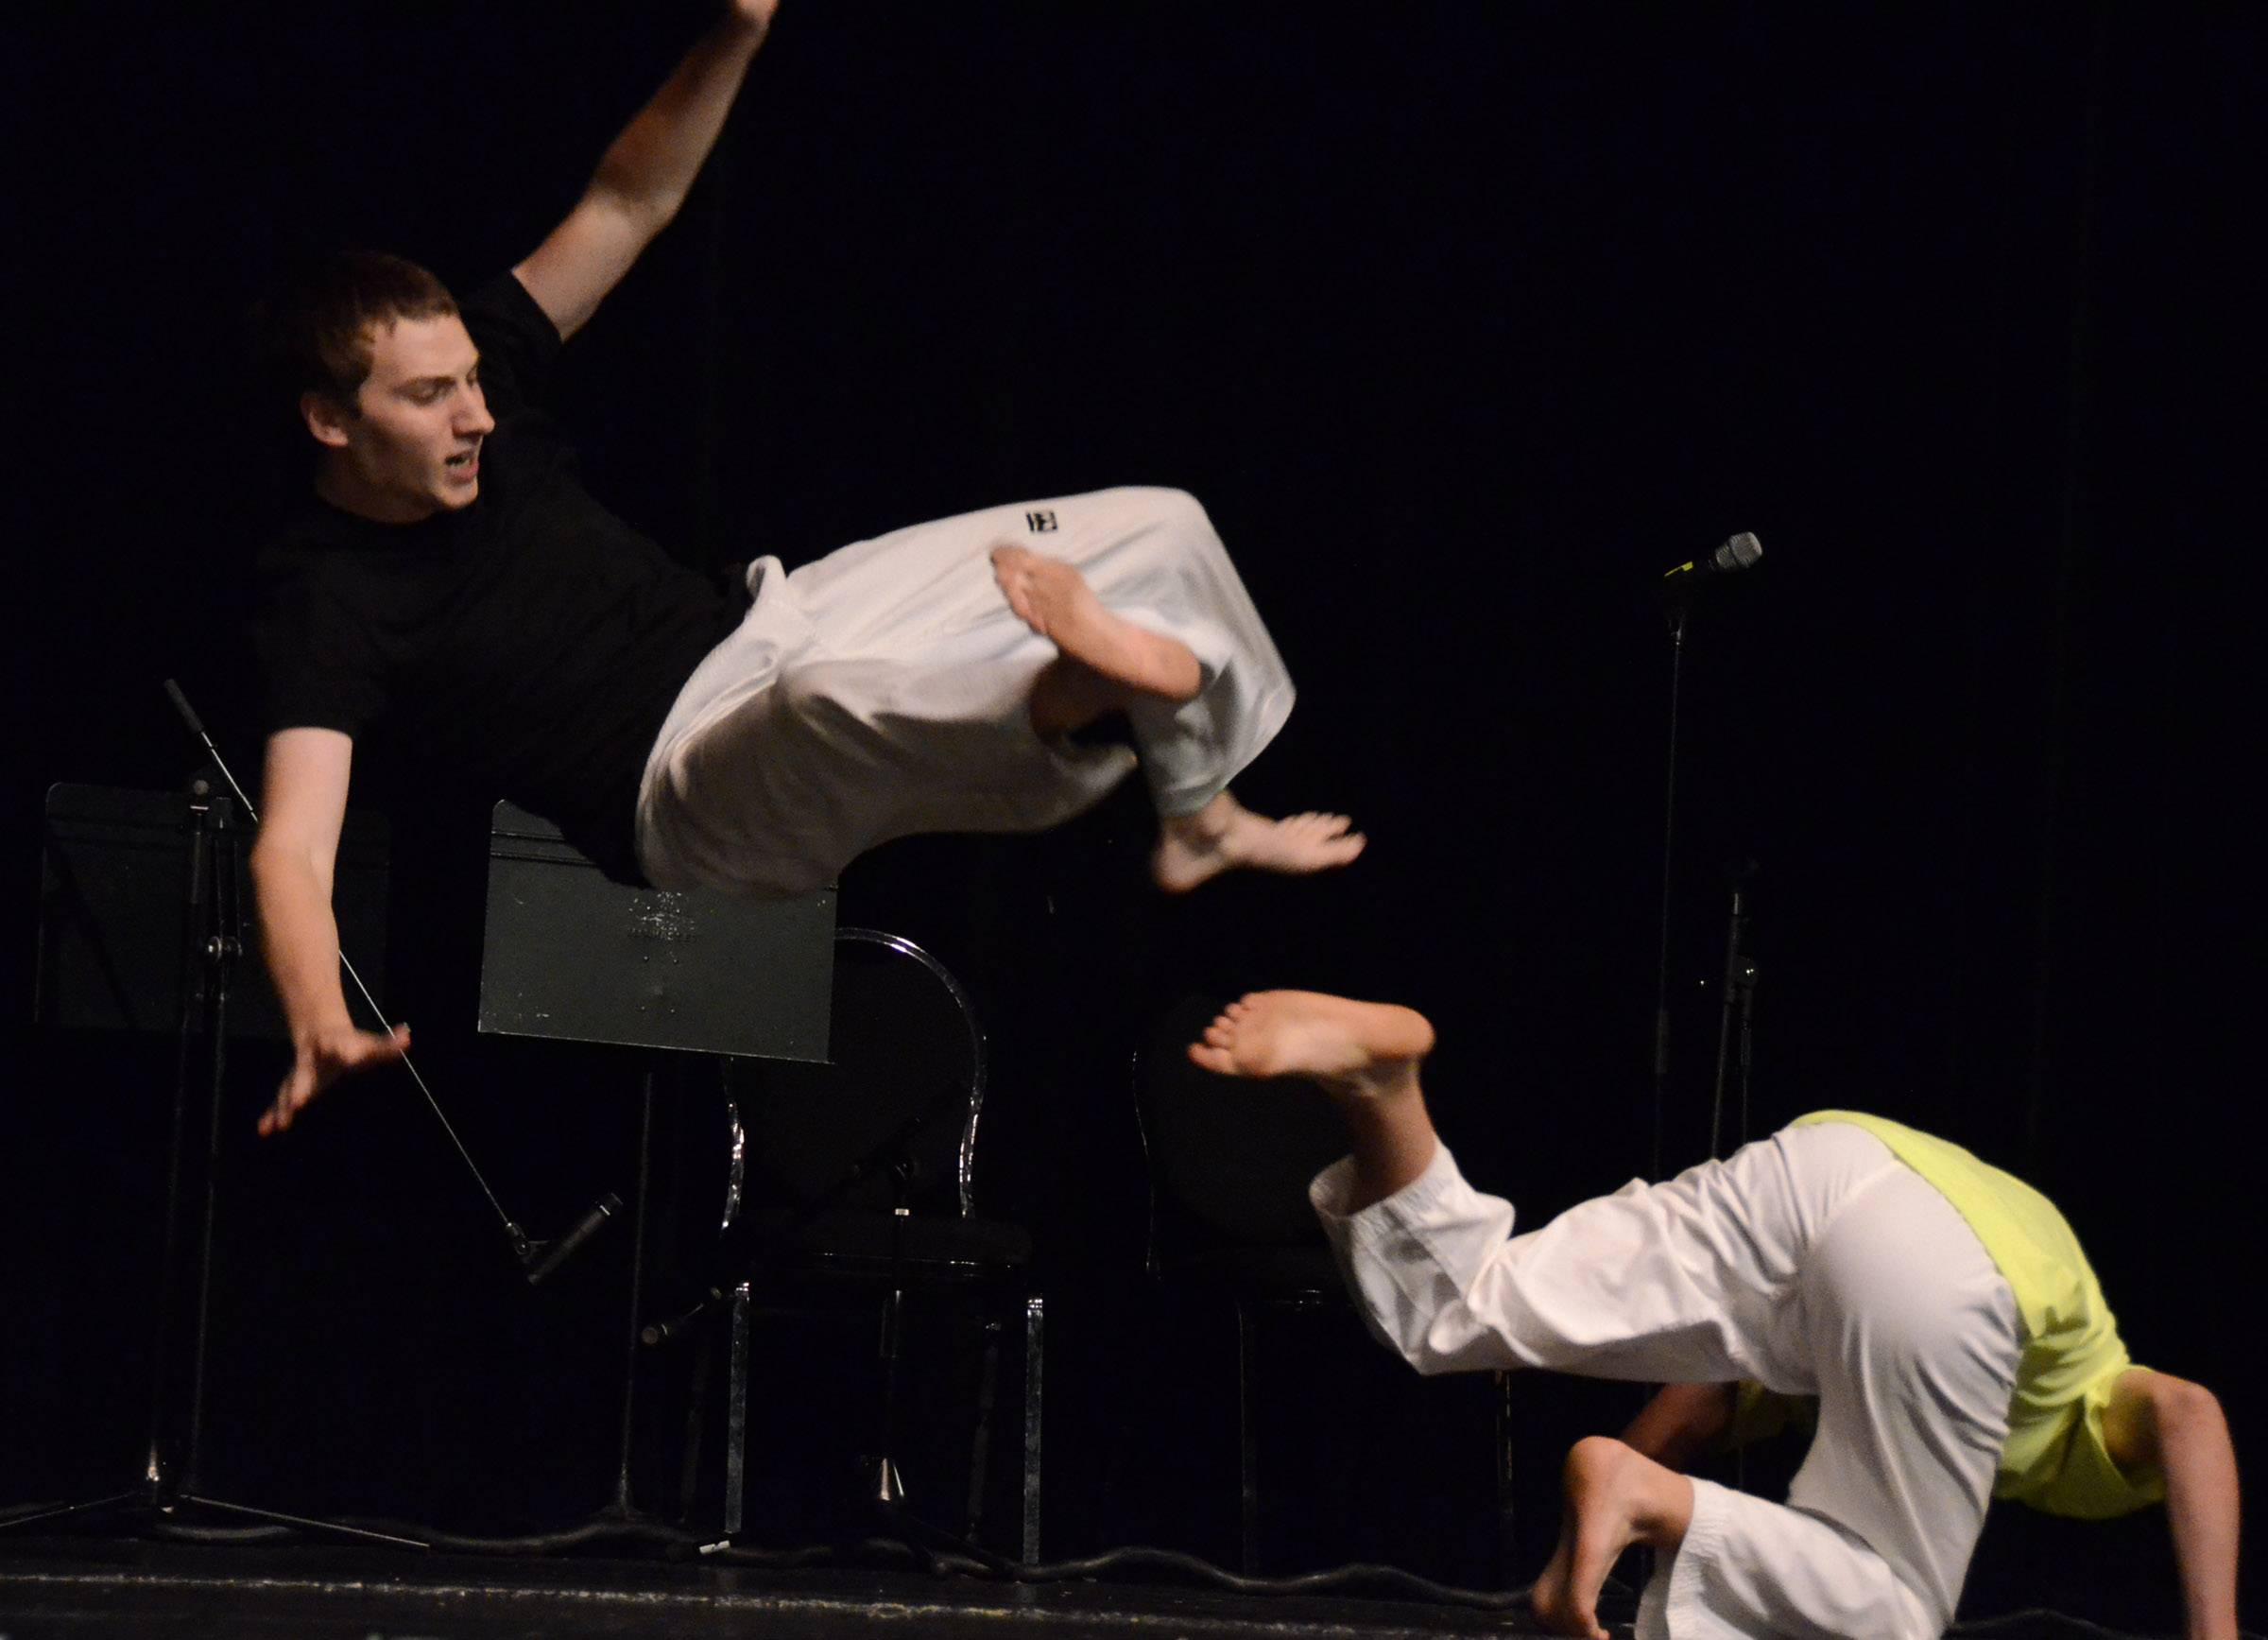 Rory Wood, 18, left, and his brother Casey, 15, both of Palatine, preform a martial arts fight scene during the Suburban Chicago's Got Talent auditions Friday at the Metropolis Performing Arts Centre in Arlington Heights. The two brothers said they have been practicing martial arts skills since age 3.